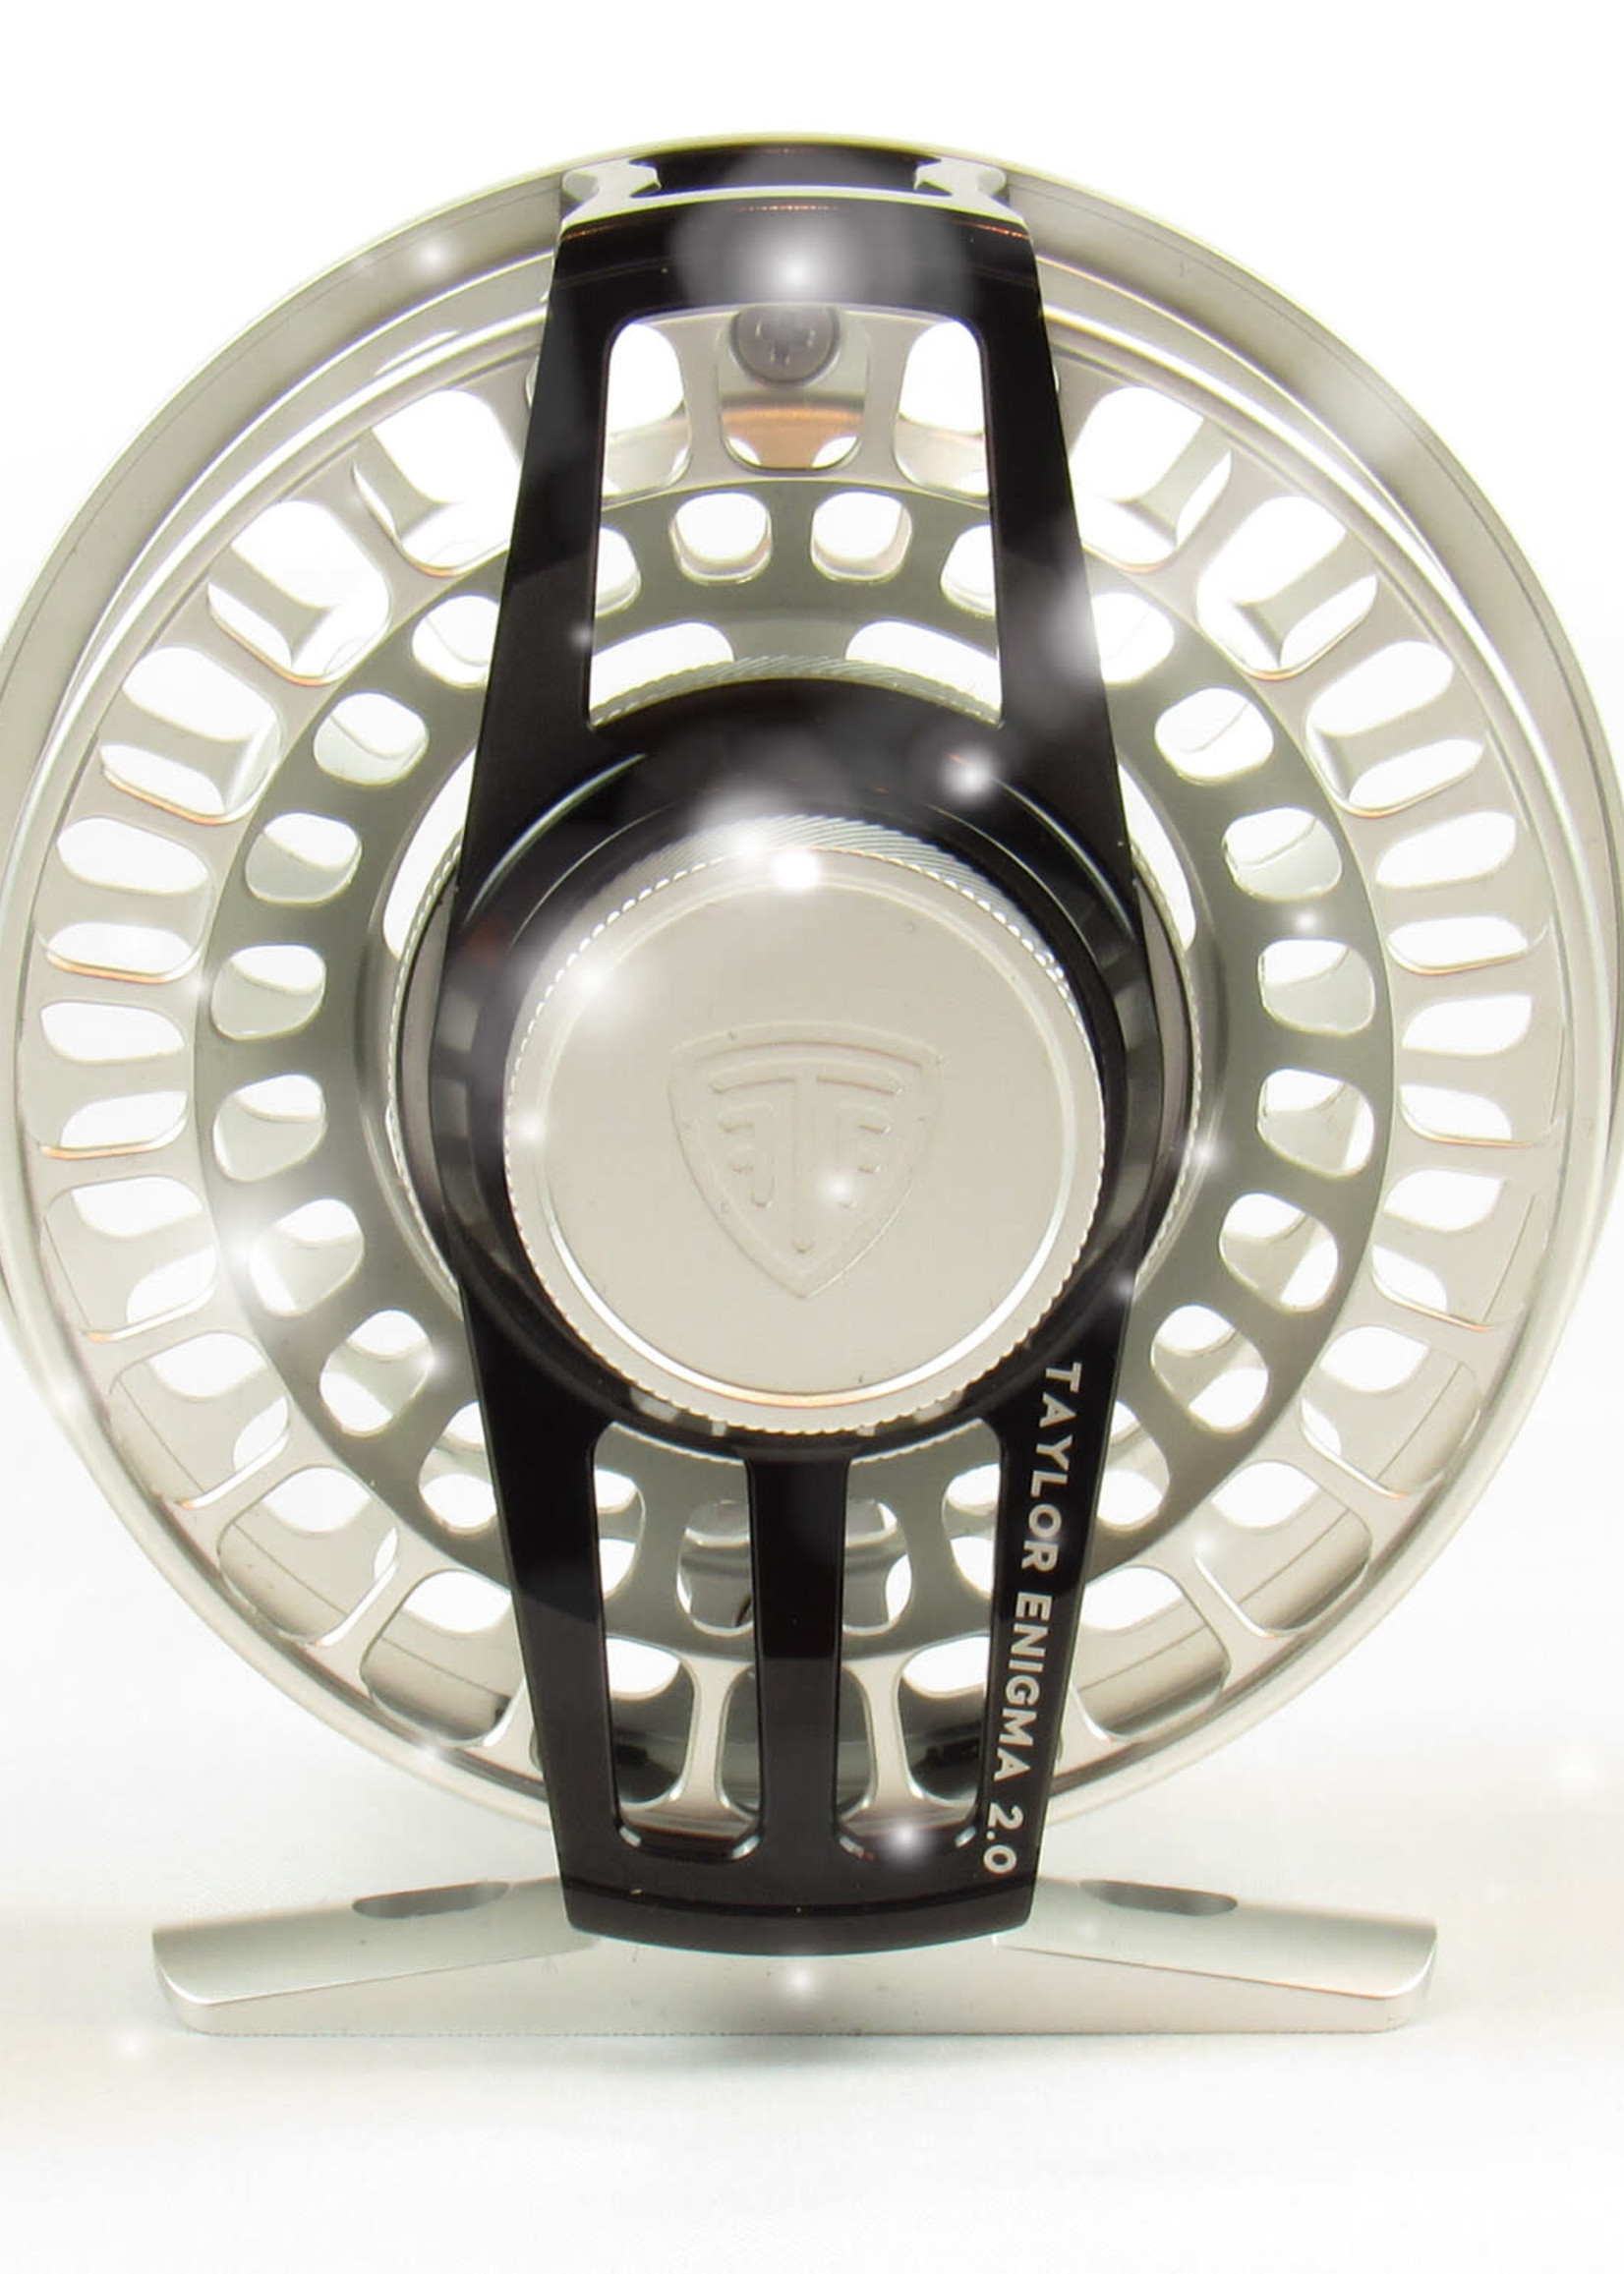 TAYLOR FLY FISHING TAYLOR ENIGMA 2.0